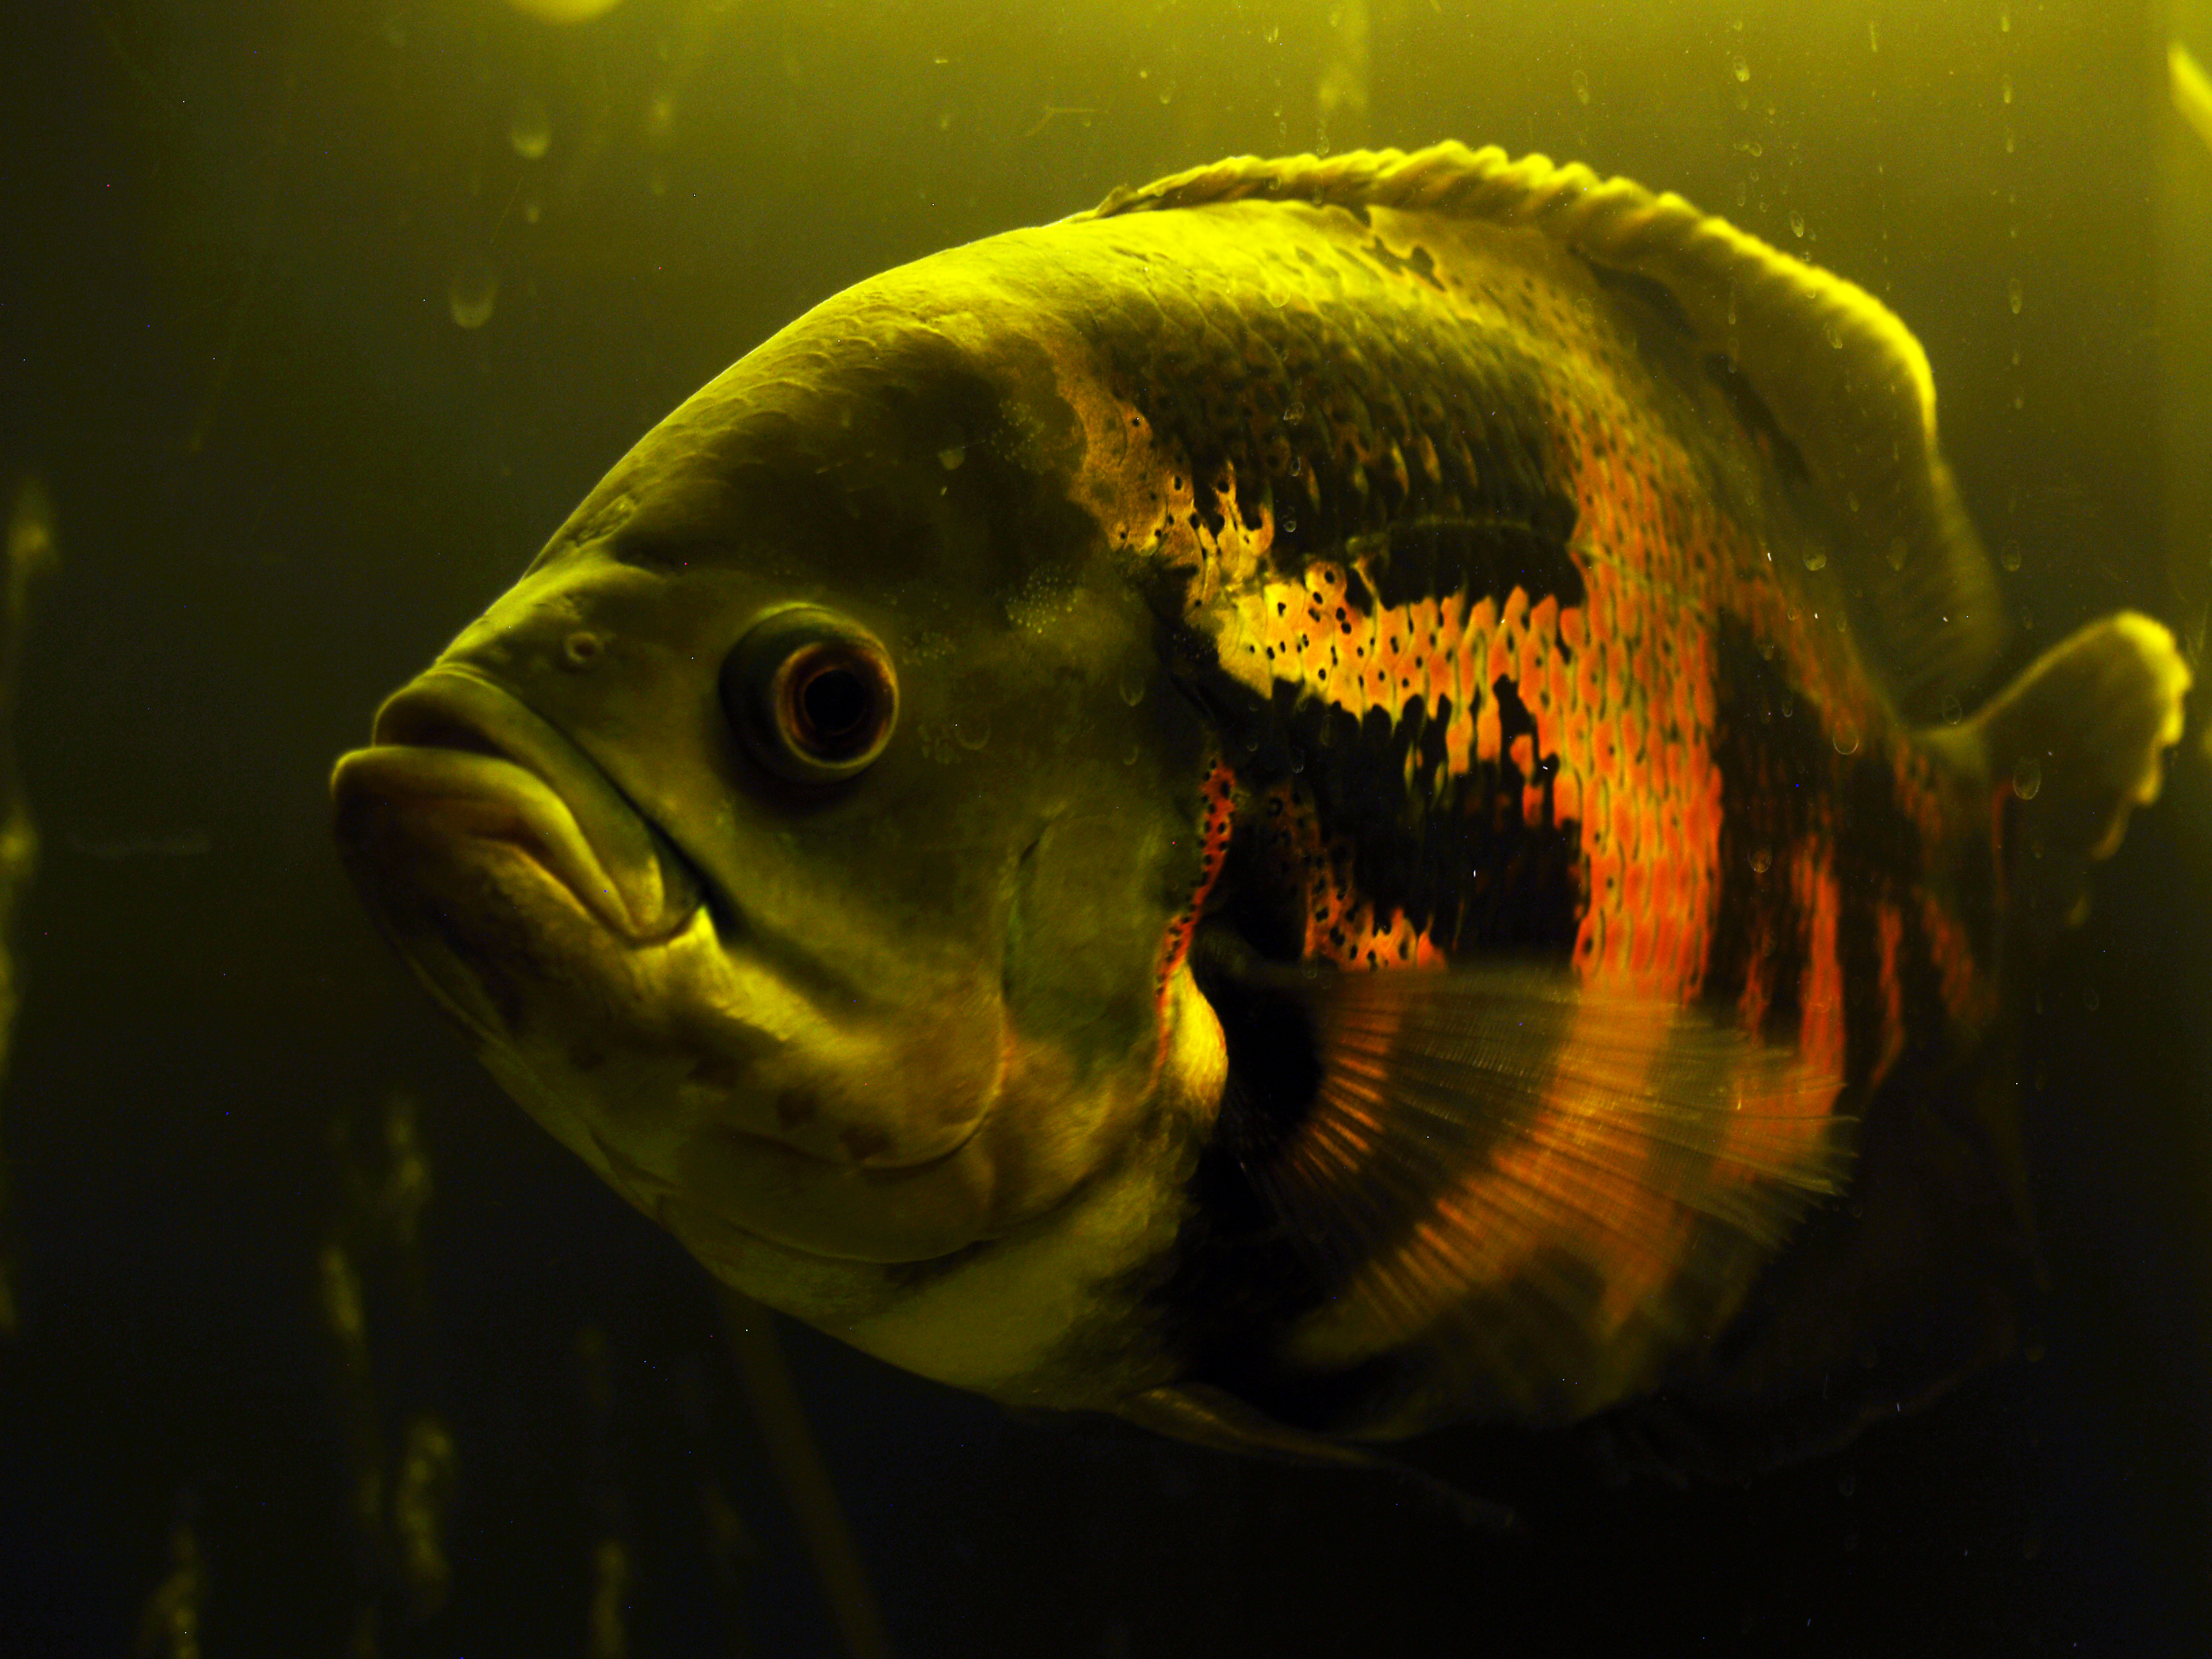 65 Fish Aquarium Jaffna moreover Fashion Backstage Make Up At Atelier Versace Fall 2016 Couture furthermore Acara Severumsevero besides Channel Islands Sportfishing Whopper Of The Week 06 14 2015 likewise Jack dempsey 9ef69a50c7. on oscar fish big